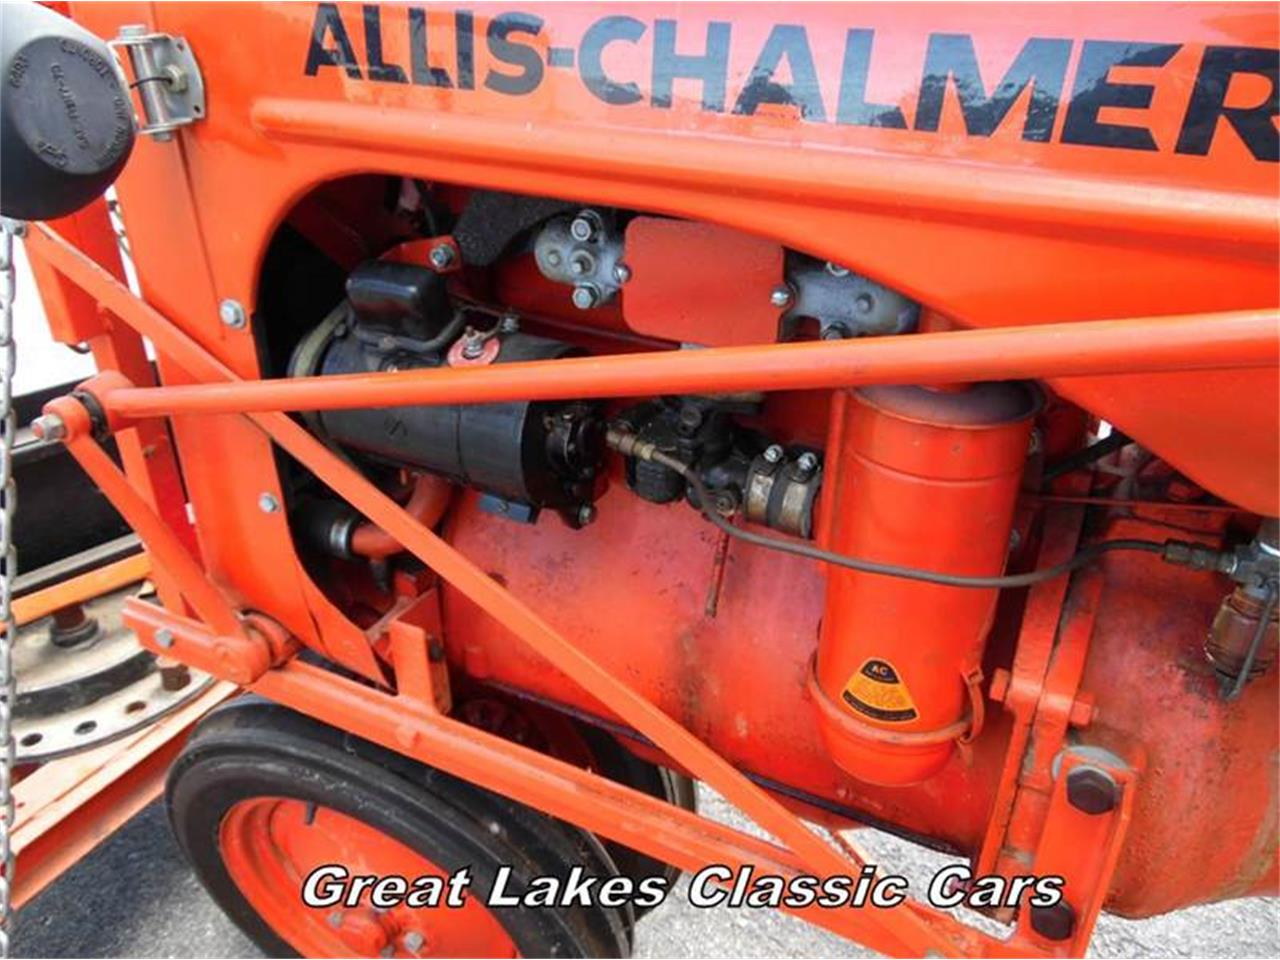 Large Picture of '41 Allis Chalmers D located in New York - HTLI